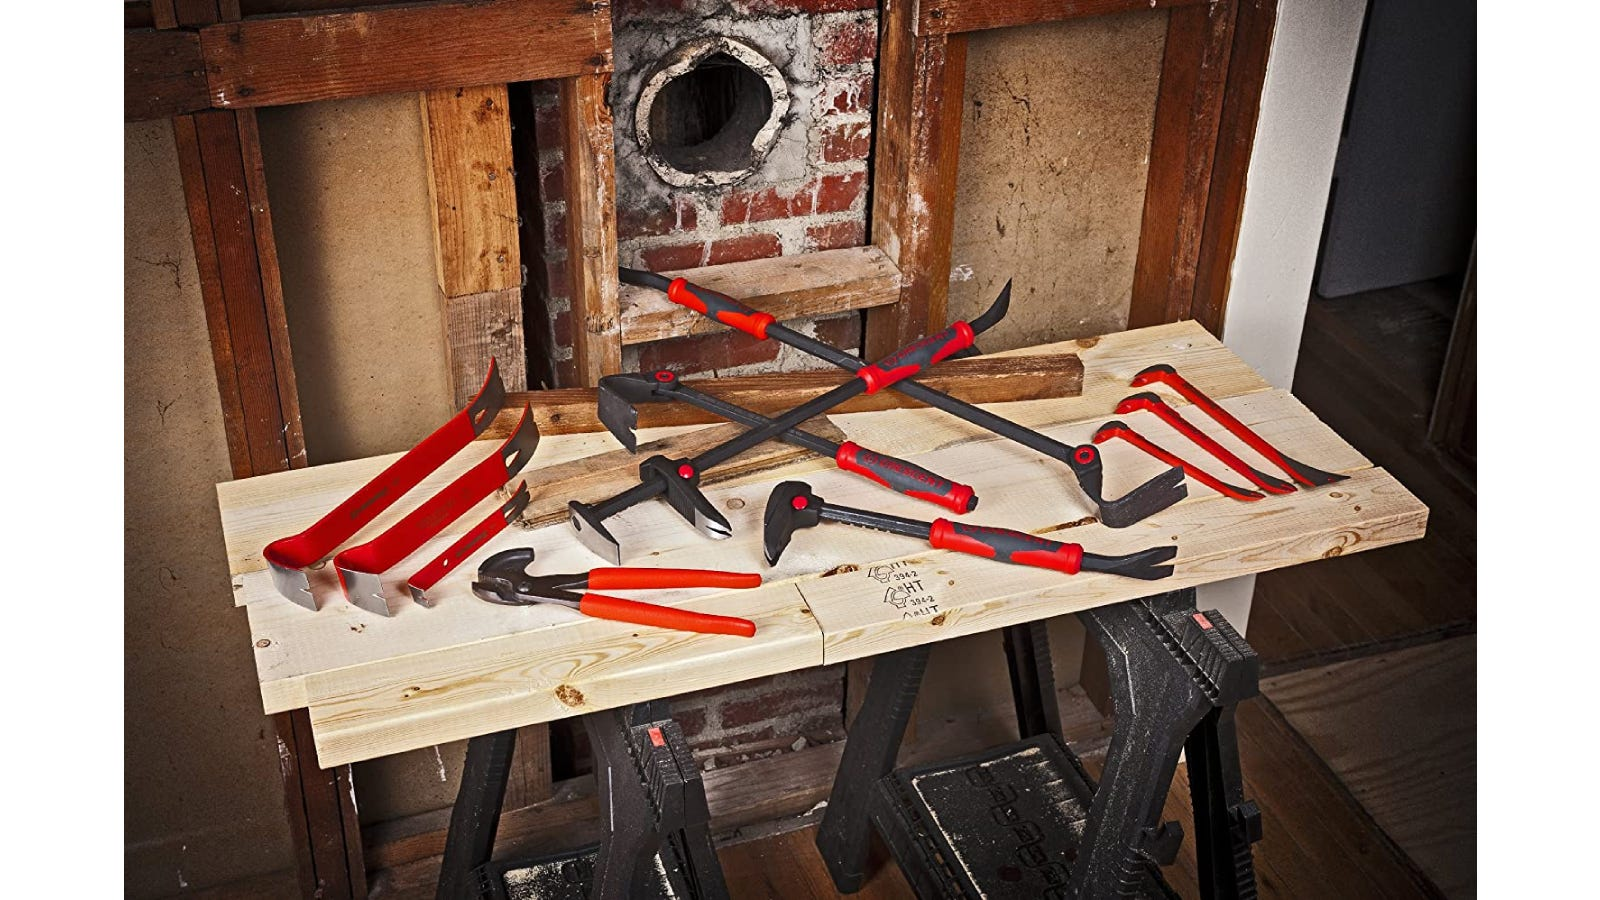 Flat pry bars and other various tools sitting on a wooden work bench.